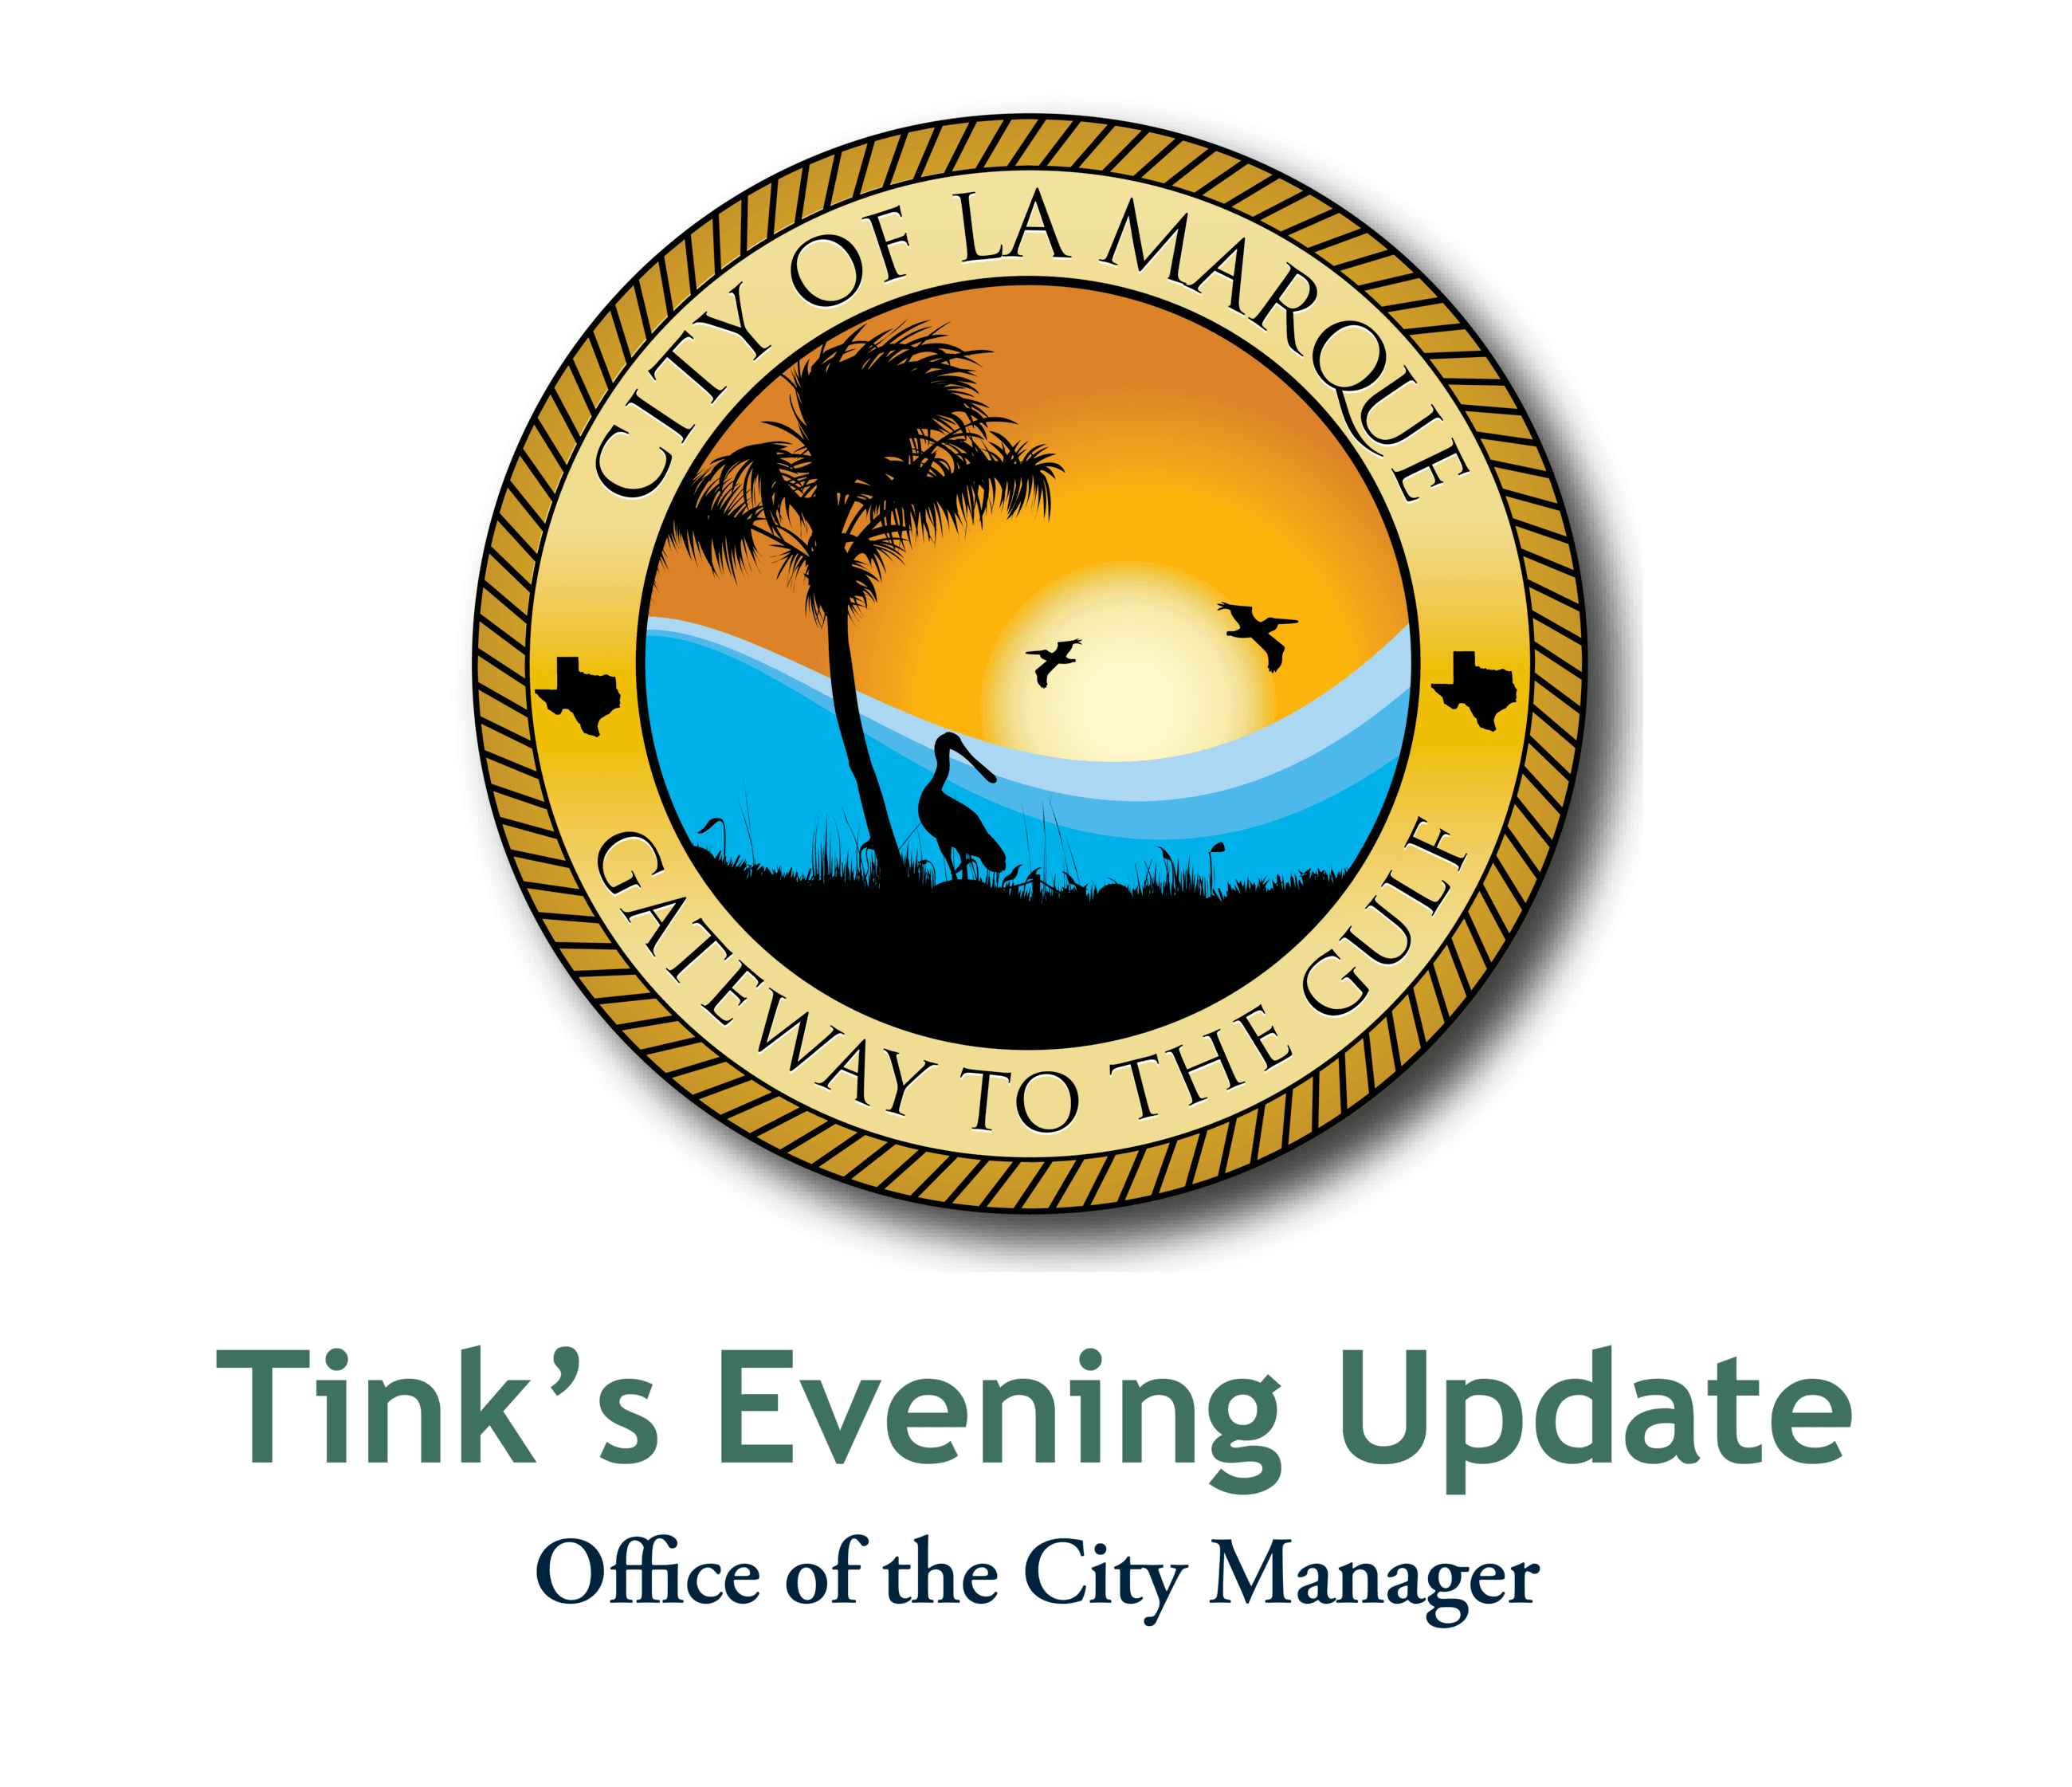 Evening Update graphic with city logo